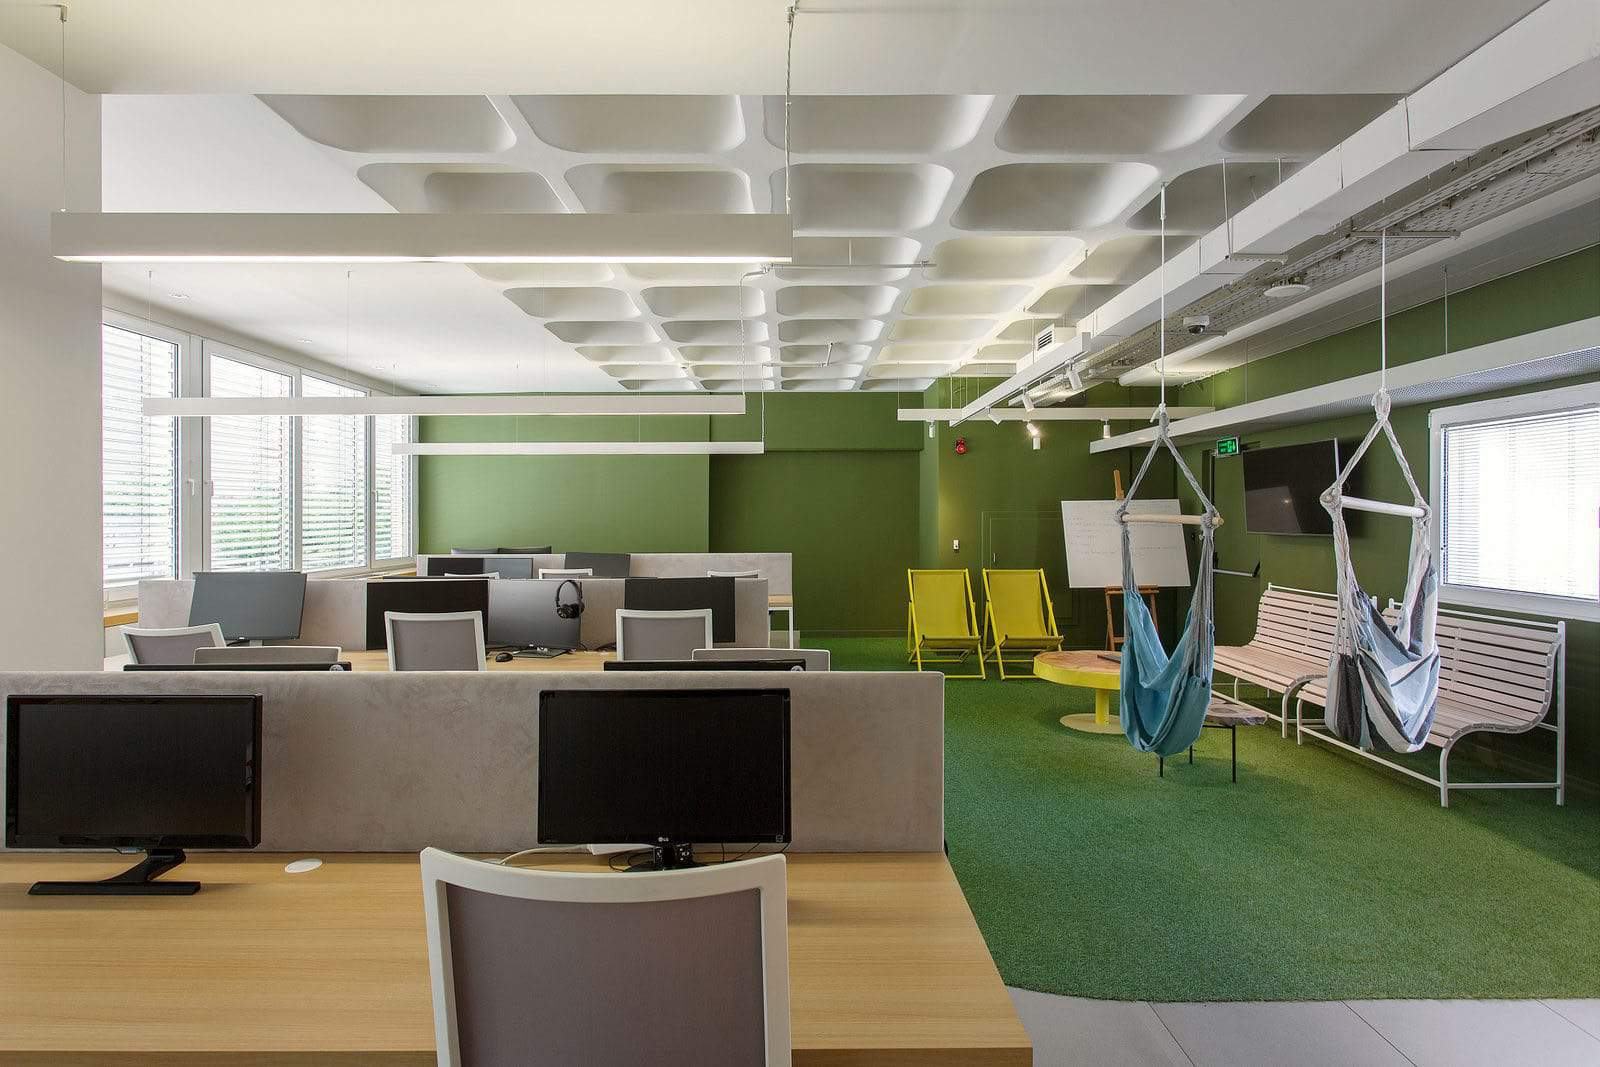 Ceiling suspended hammocks and artificial grass floor